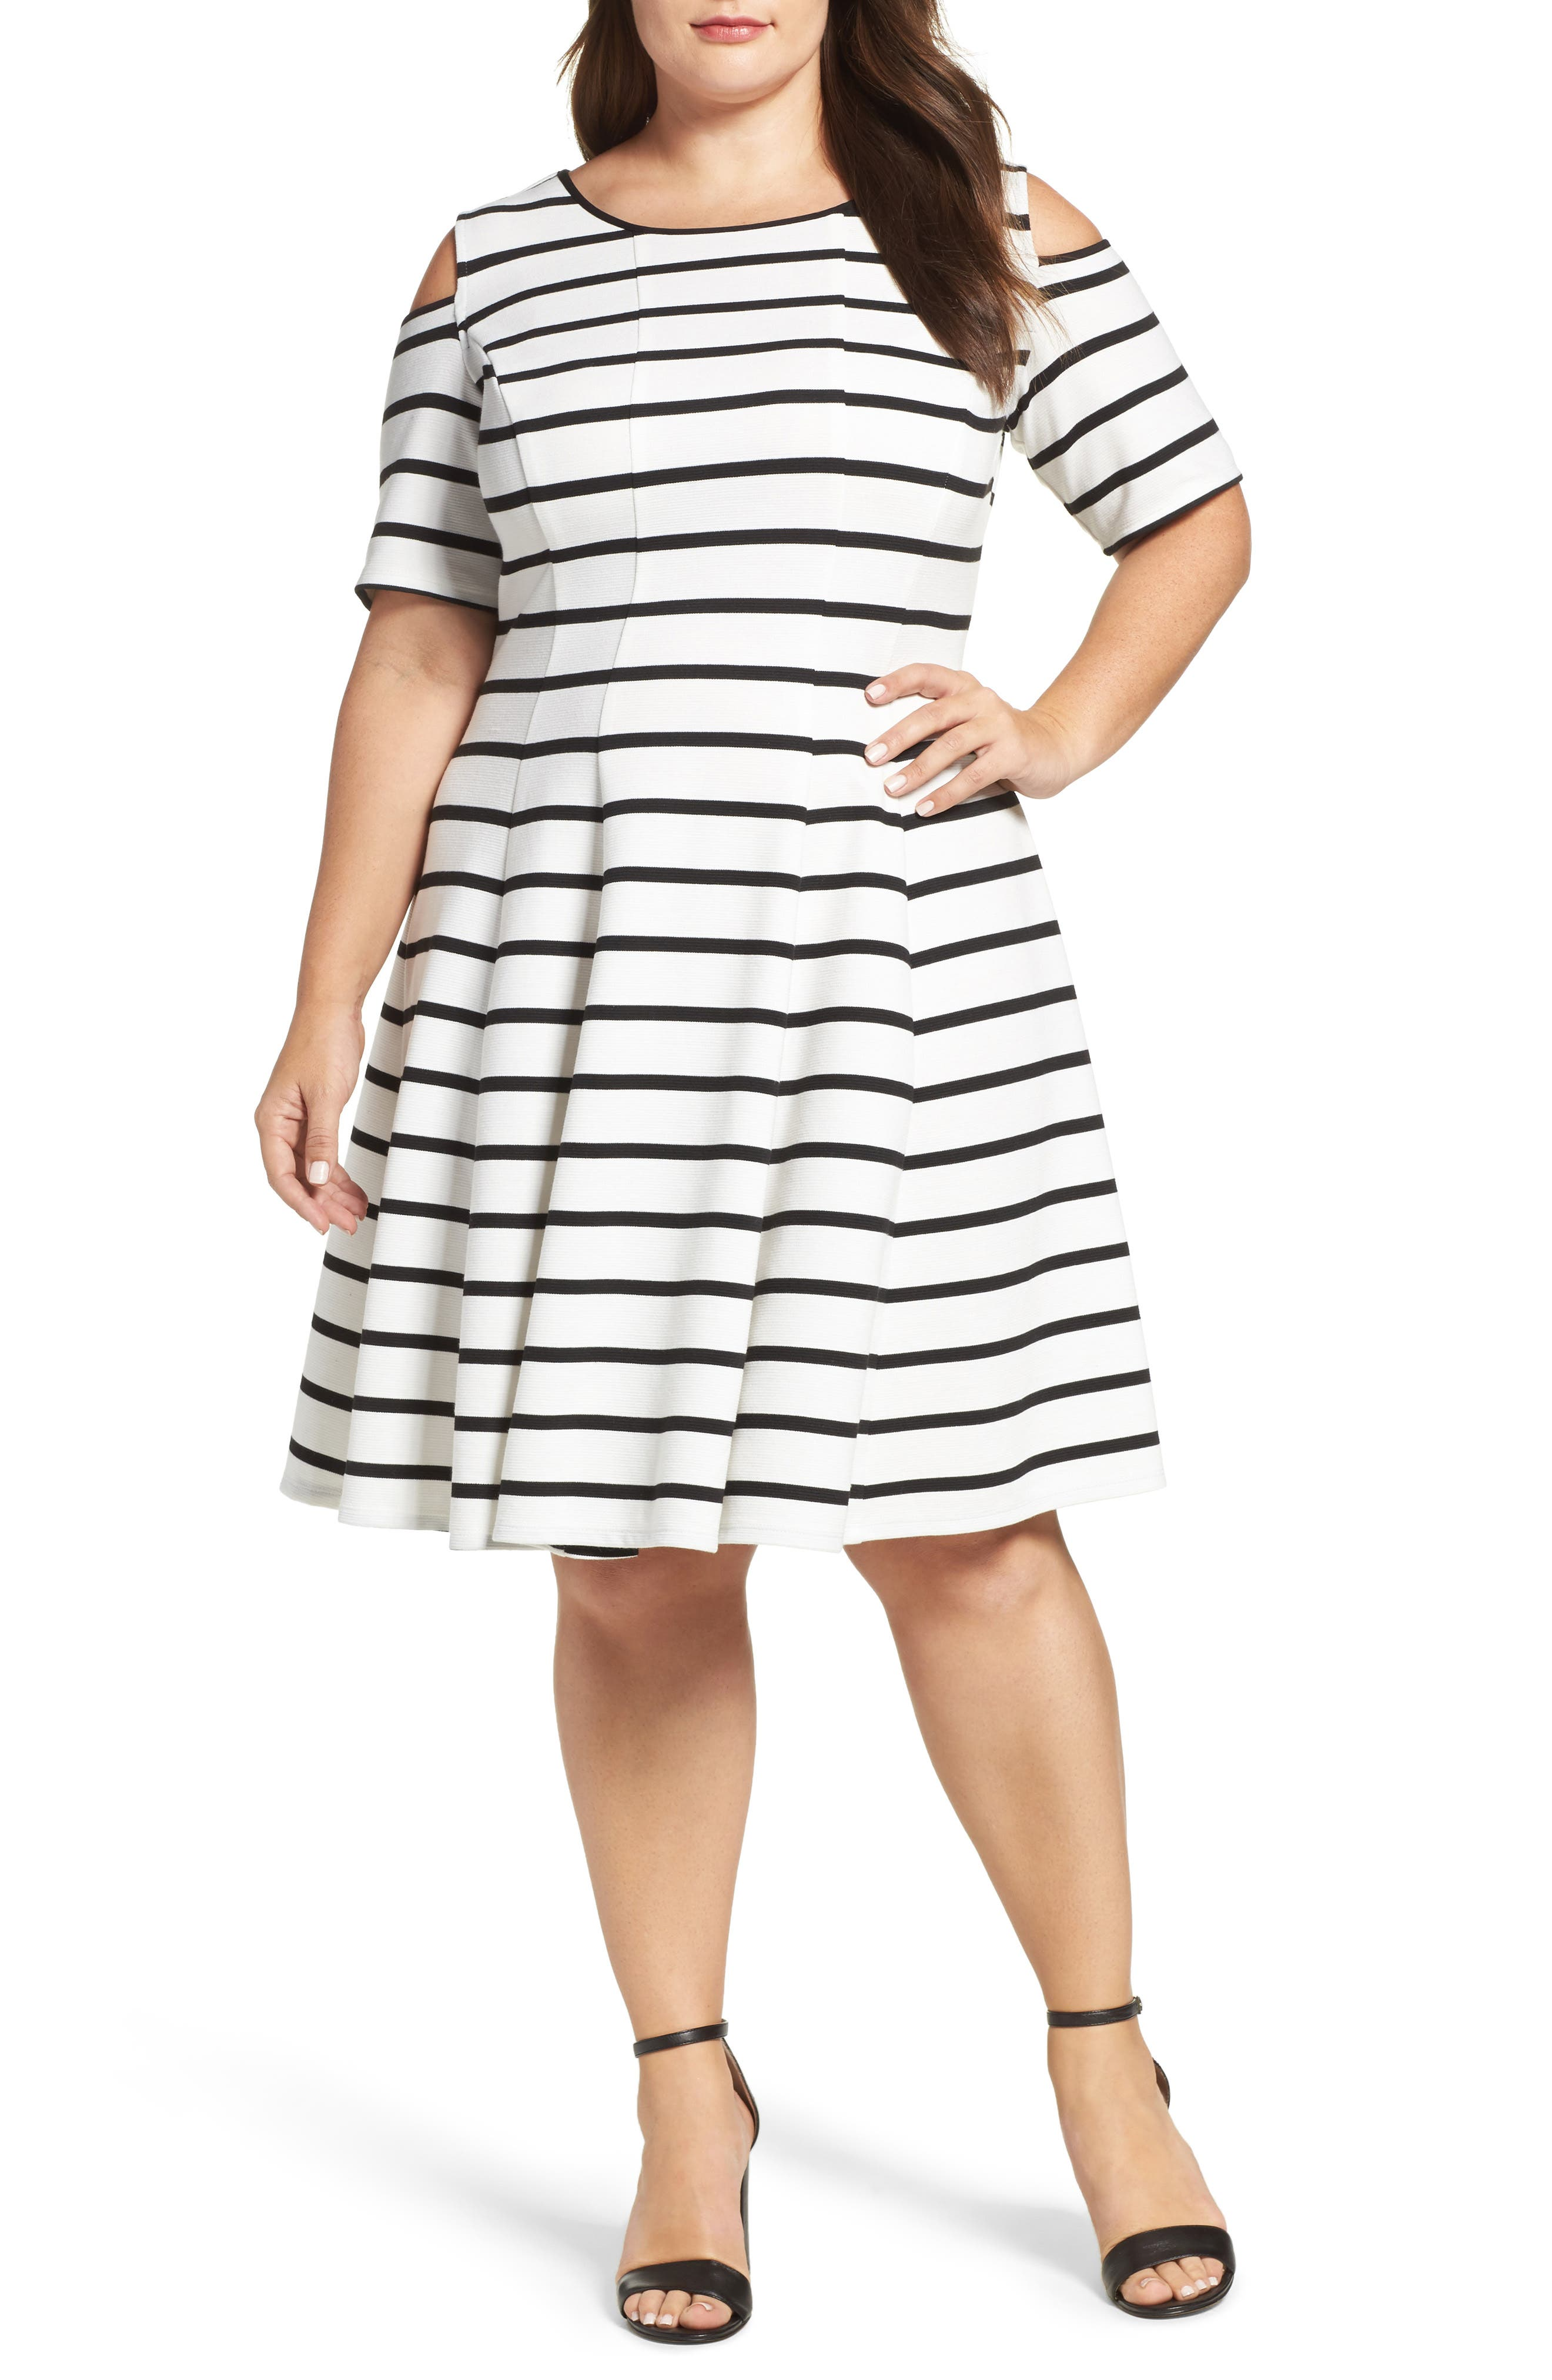 Main Image - Gabby Skye Cold Shoulder Fit & Flare Dress (Plus Size)